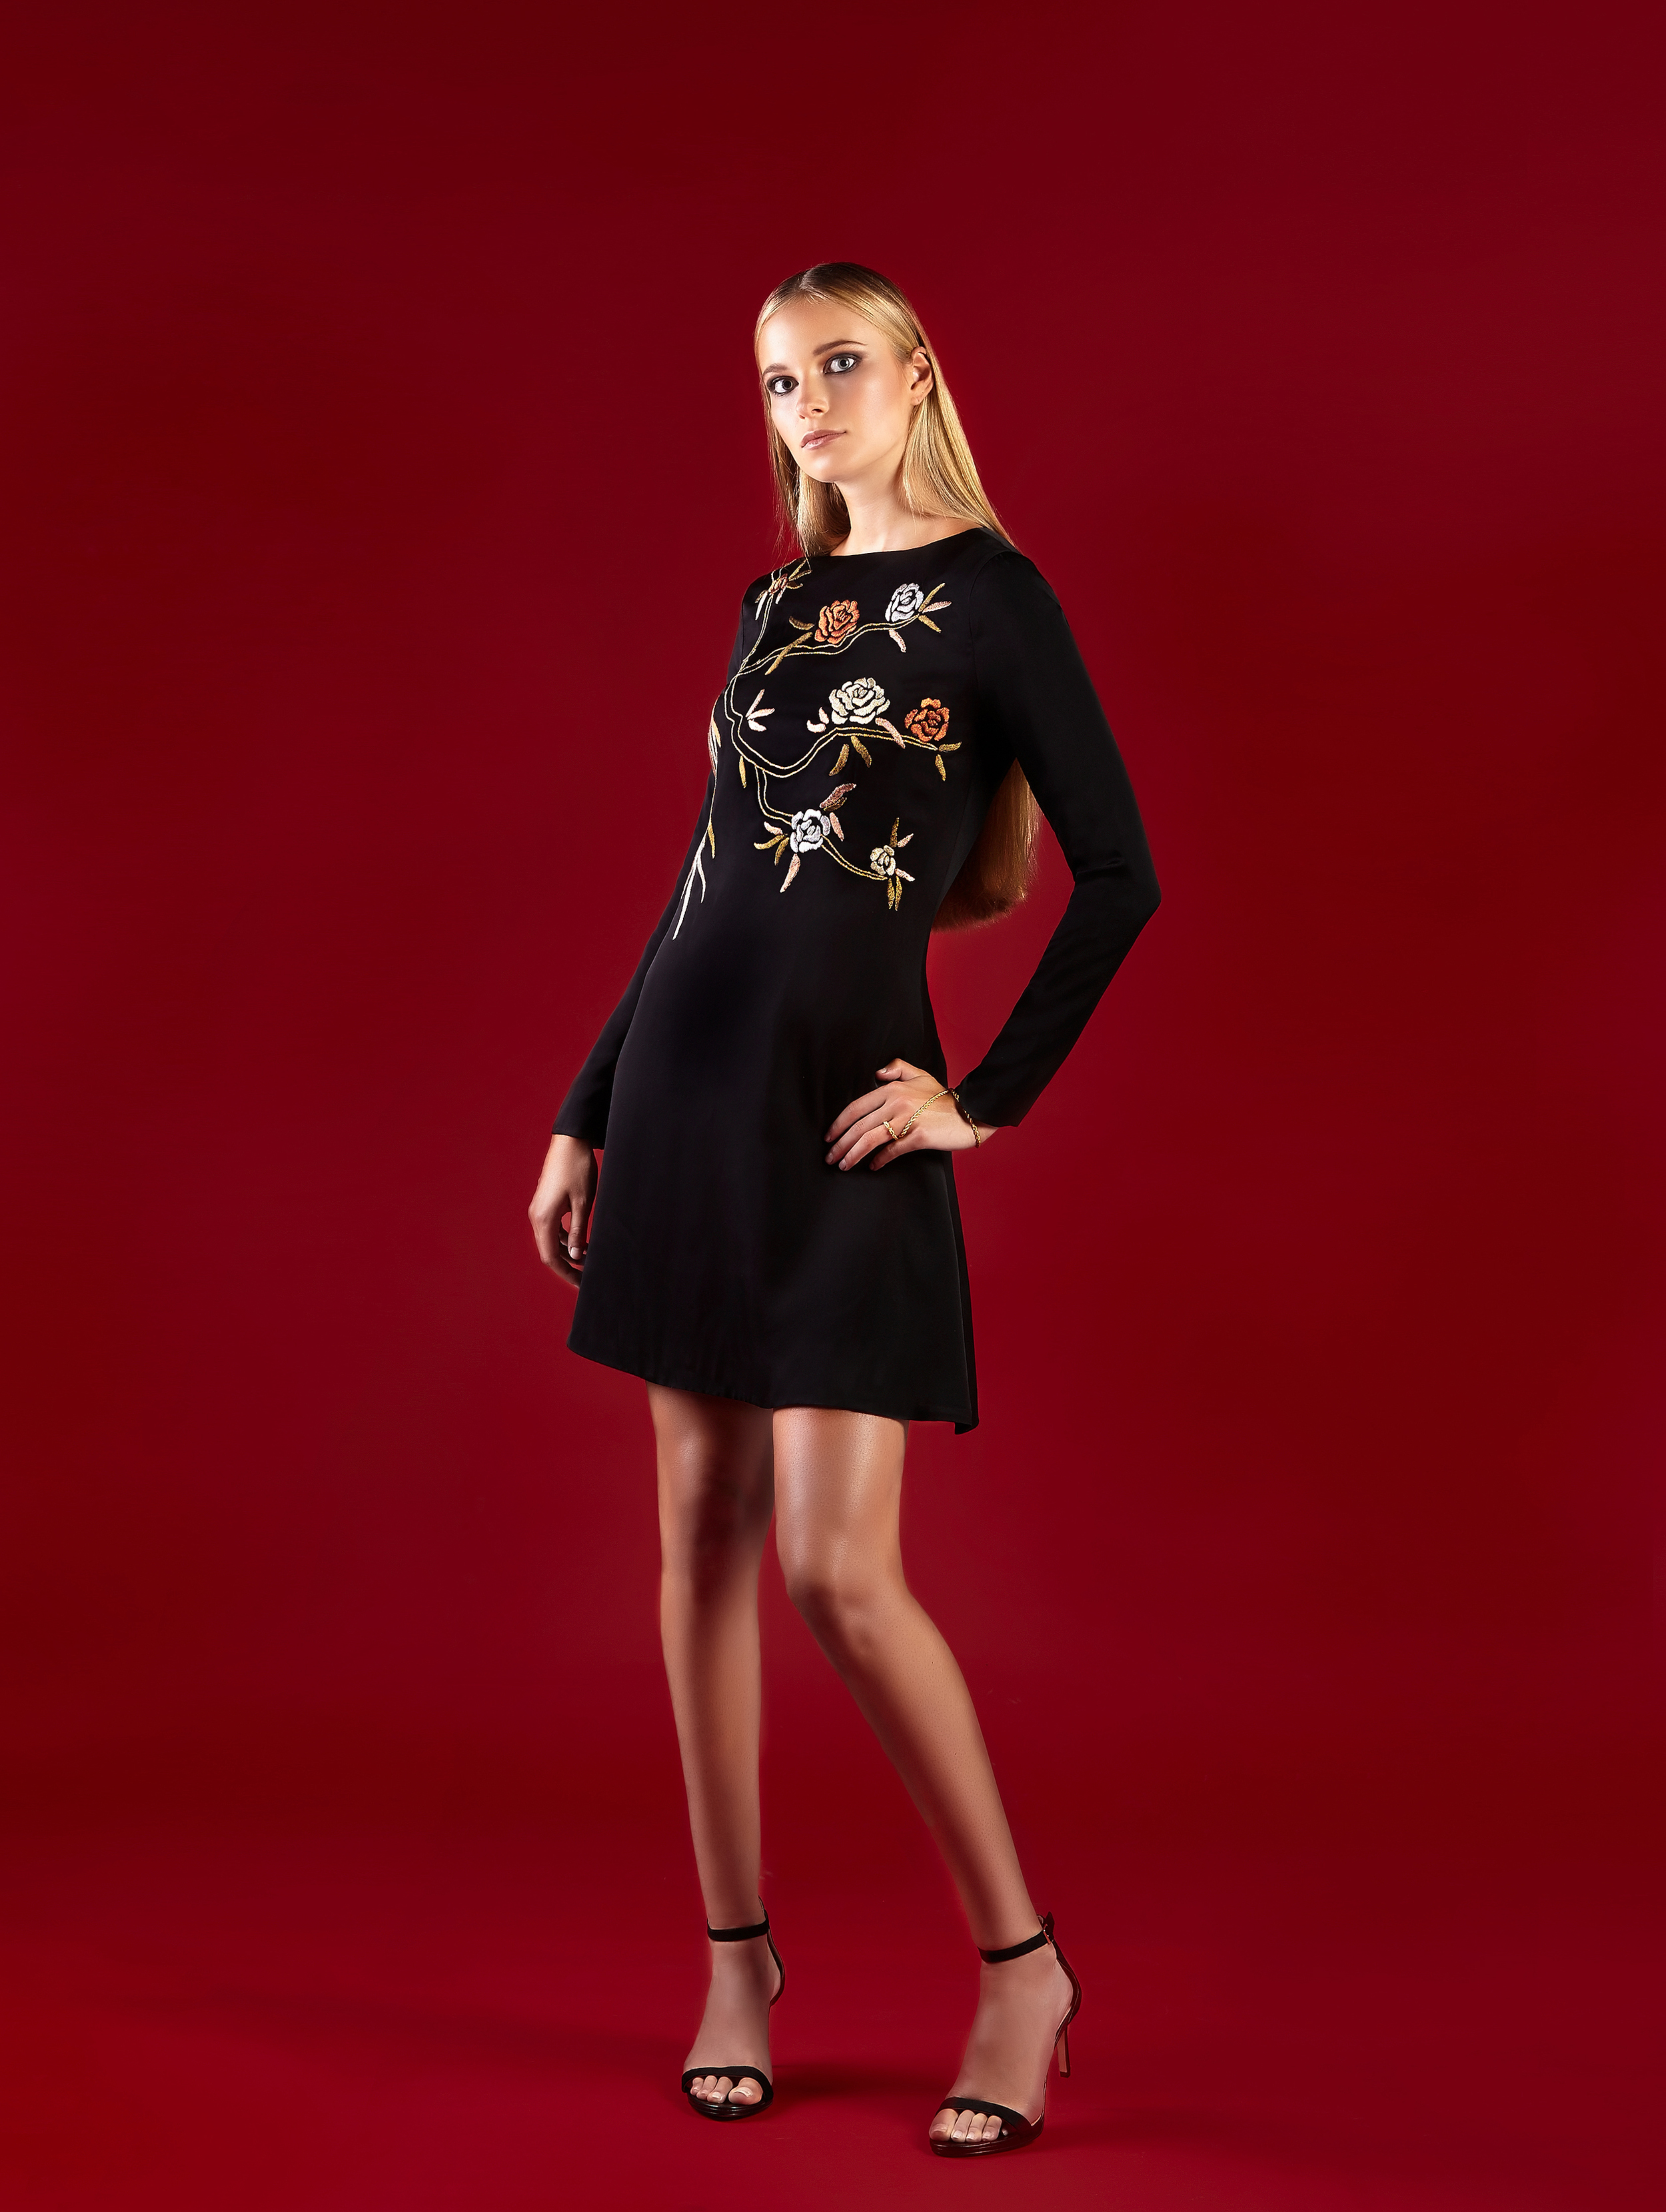 Metallic_Embroidered_Dress3.jpg